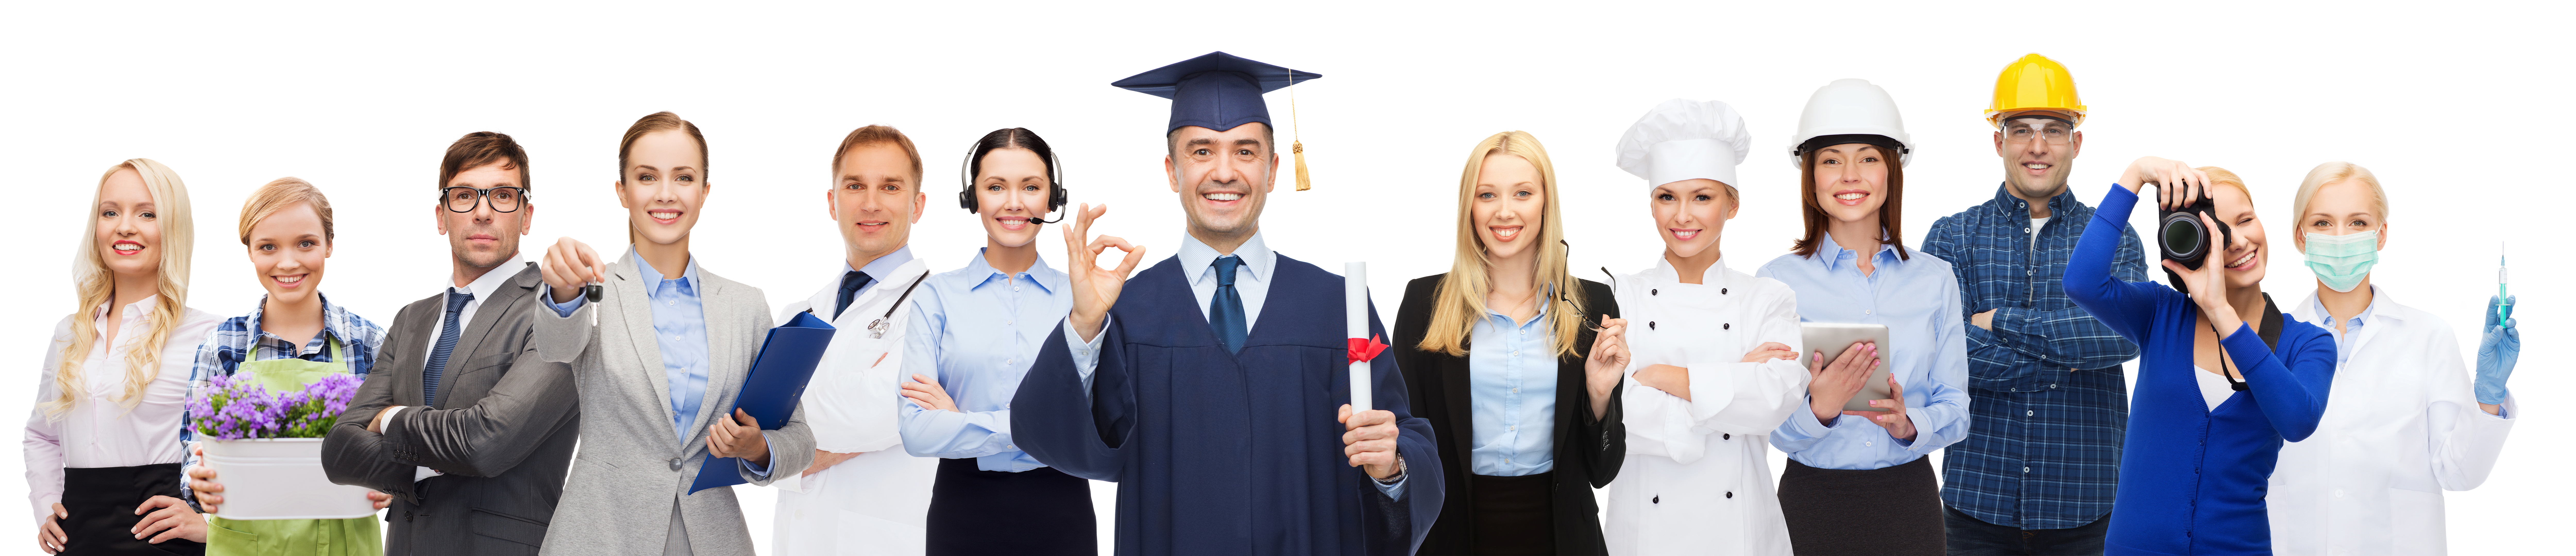 recognition of qualification